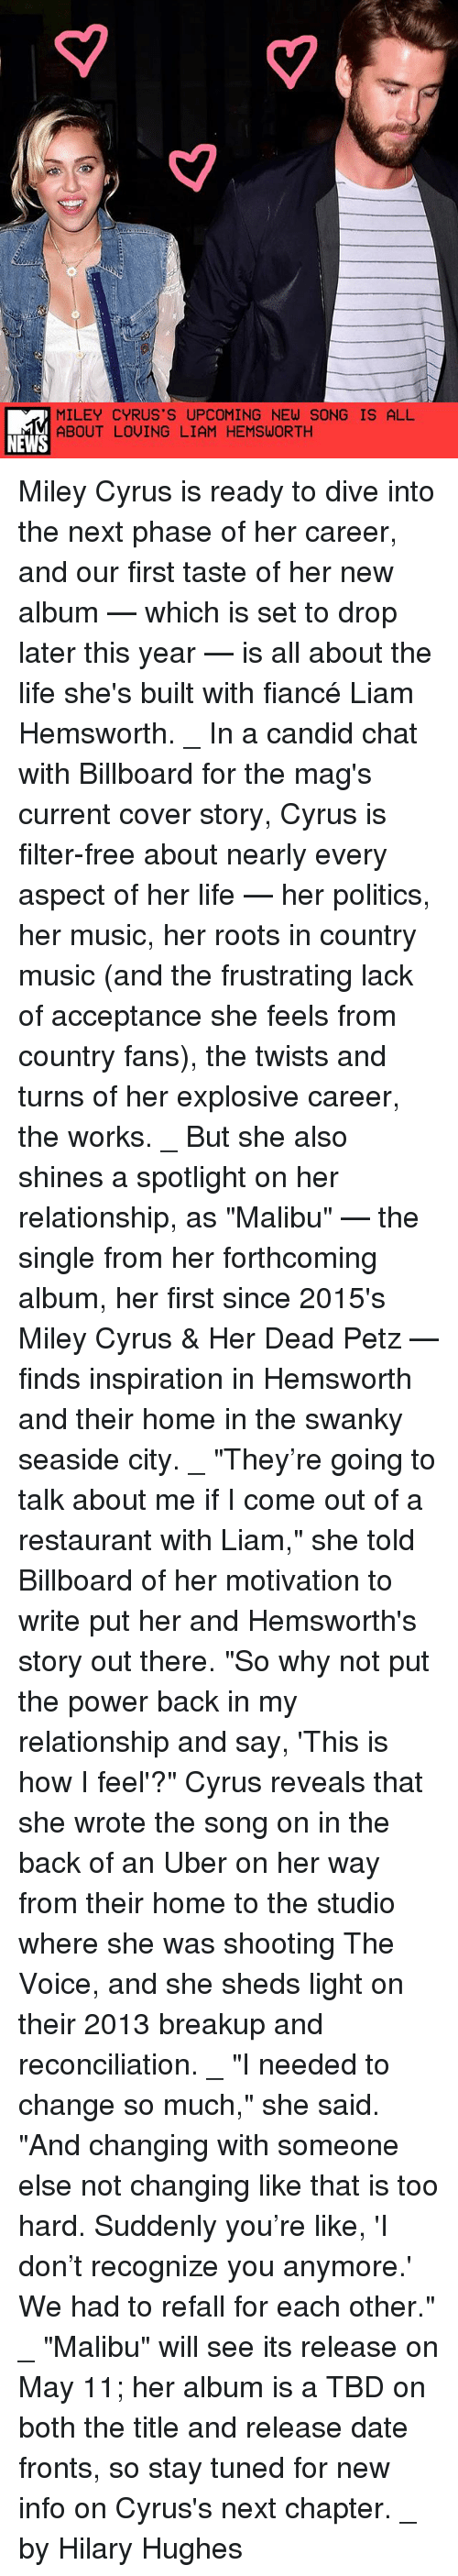 """Candidness: MILEY CYRUS S UPCOMING NEW SONG IS ALL  ABOUT LOVING LIAM HEMSWORTH  NEWS Miley Cyrus is ready to dive into the next phase of her career, and our first taste of her new album — which is set to drop later this year — is all about the life she's built with fiancé Liam Hemsworth. _ In a candid chat with Billboard for the mag's current cover story, Cyrus is filter-free about nearly every aspect of her life — her politics, her music, her roots in country music (and the frustrating lack of acceptance she feels from country fans), the twists and turns of her explosive career, the works. _ But she also shines a spotlight on her relationship, as """"Malibu"""" — the single from her forthcoming album, her first since 2015's Miley Cyrus & Her Dead Petz — finds inspiration in Hemsworth and their home in the swanky seaside city. _ """"They're going to talk about me if I come out of a restaurant with Liam,"""" she told Billboard of her motivation to write put her and Hemsworth's story out there. """"So why not put the power back in my relationship and say, 'This is how I feel'?"""" Cyrus reveals that she wrote the song on in the back of an Uber on her way from their home to the studio where she was shooting The Voice, and she sheds light on their 2013 breakup and reconciliation. _ """"I needed to change so much,"""" she said. """"And changing with someone else not changing like that is too hard. Suddenly you're like, 'I don't recognize you anymore.' We had to refall for each other."""" _ """"Malibu"""" will see its release on May 11; her album is a TBD on both the title and release date fronts, so stay tuned for new info on Cyrus's next chapter. _ by Hilary Hughes"""